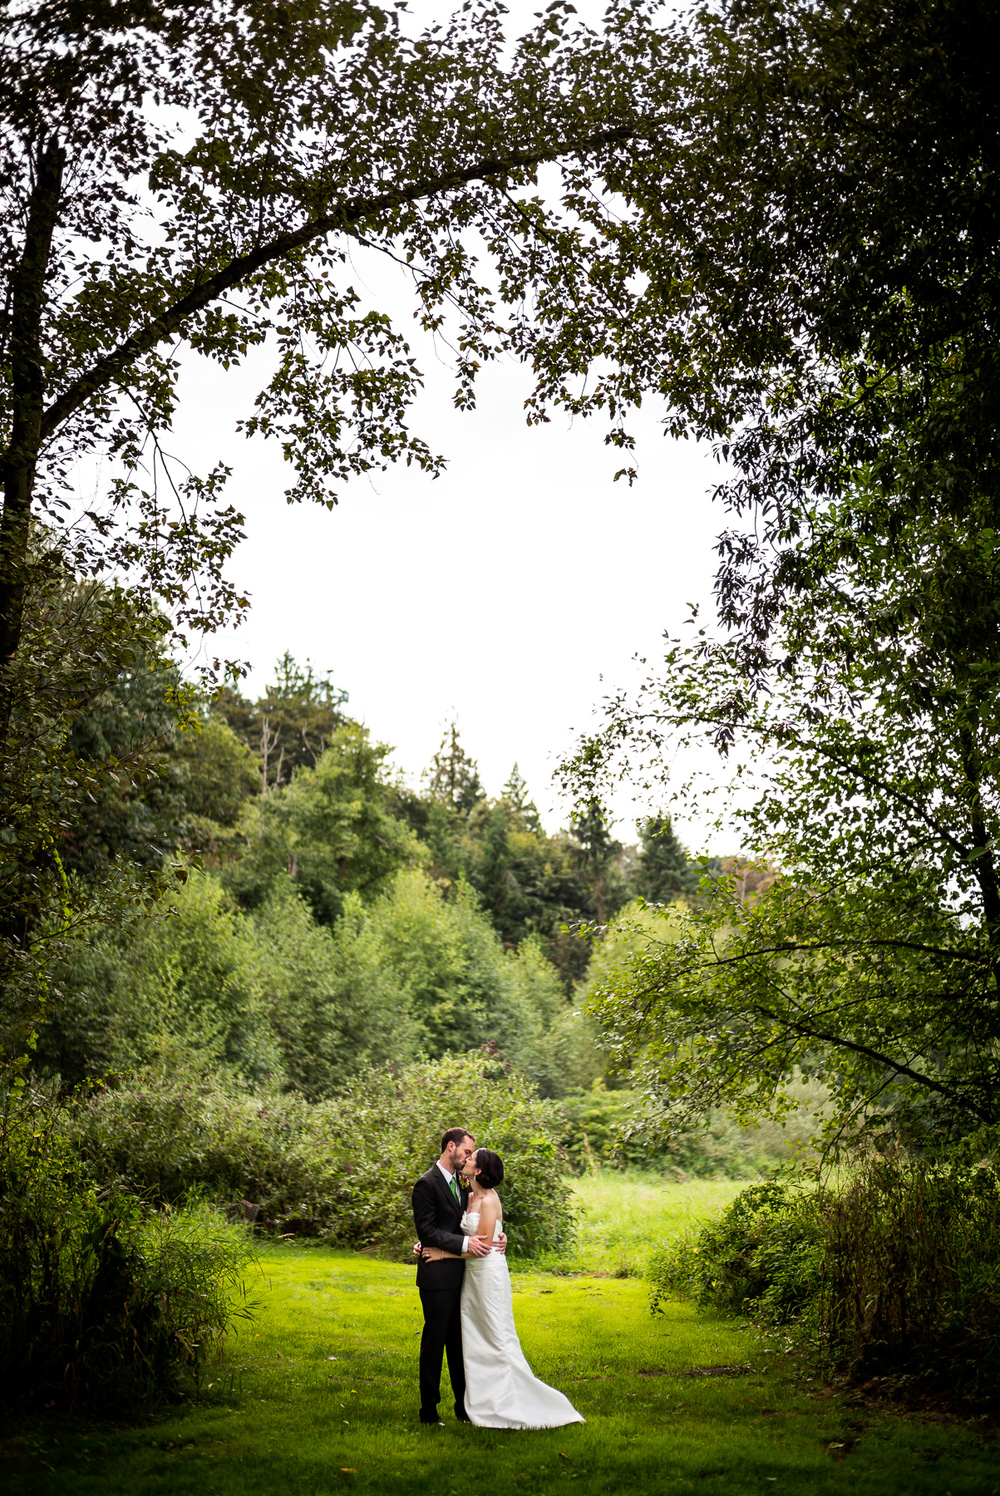 0060_olivia&Matt-outdoor-wedding-brandon-patoc-photography.jpg